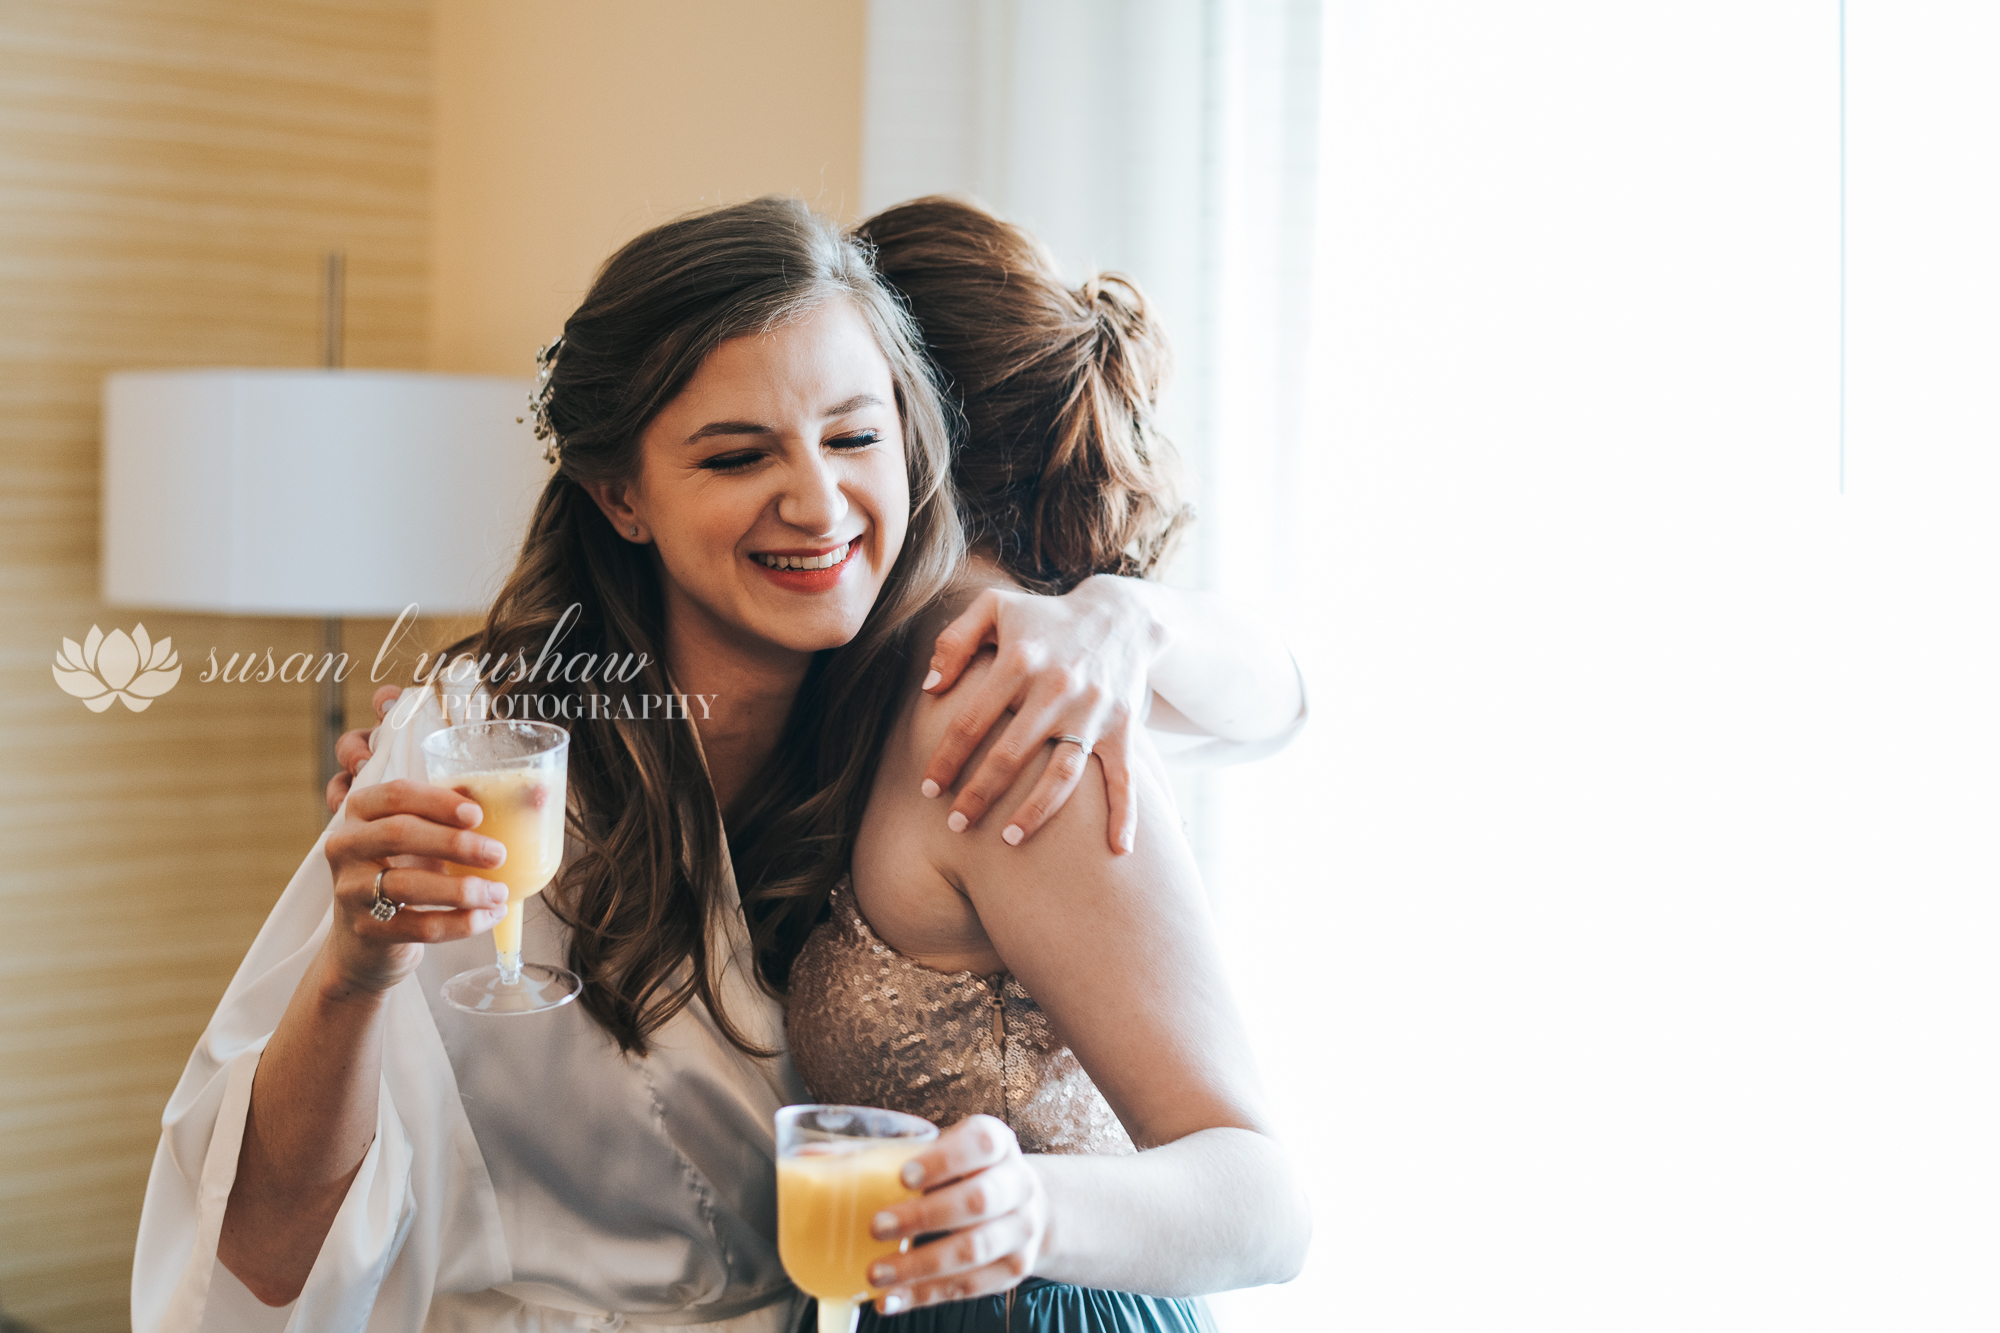 Chynna and John Wedding 05-18-2019 SLY Photography-13.jpg